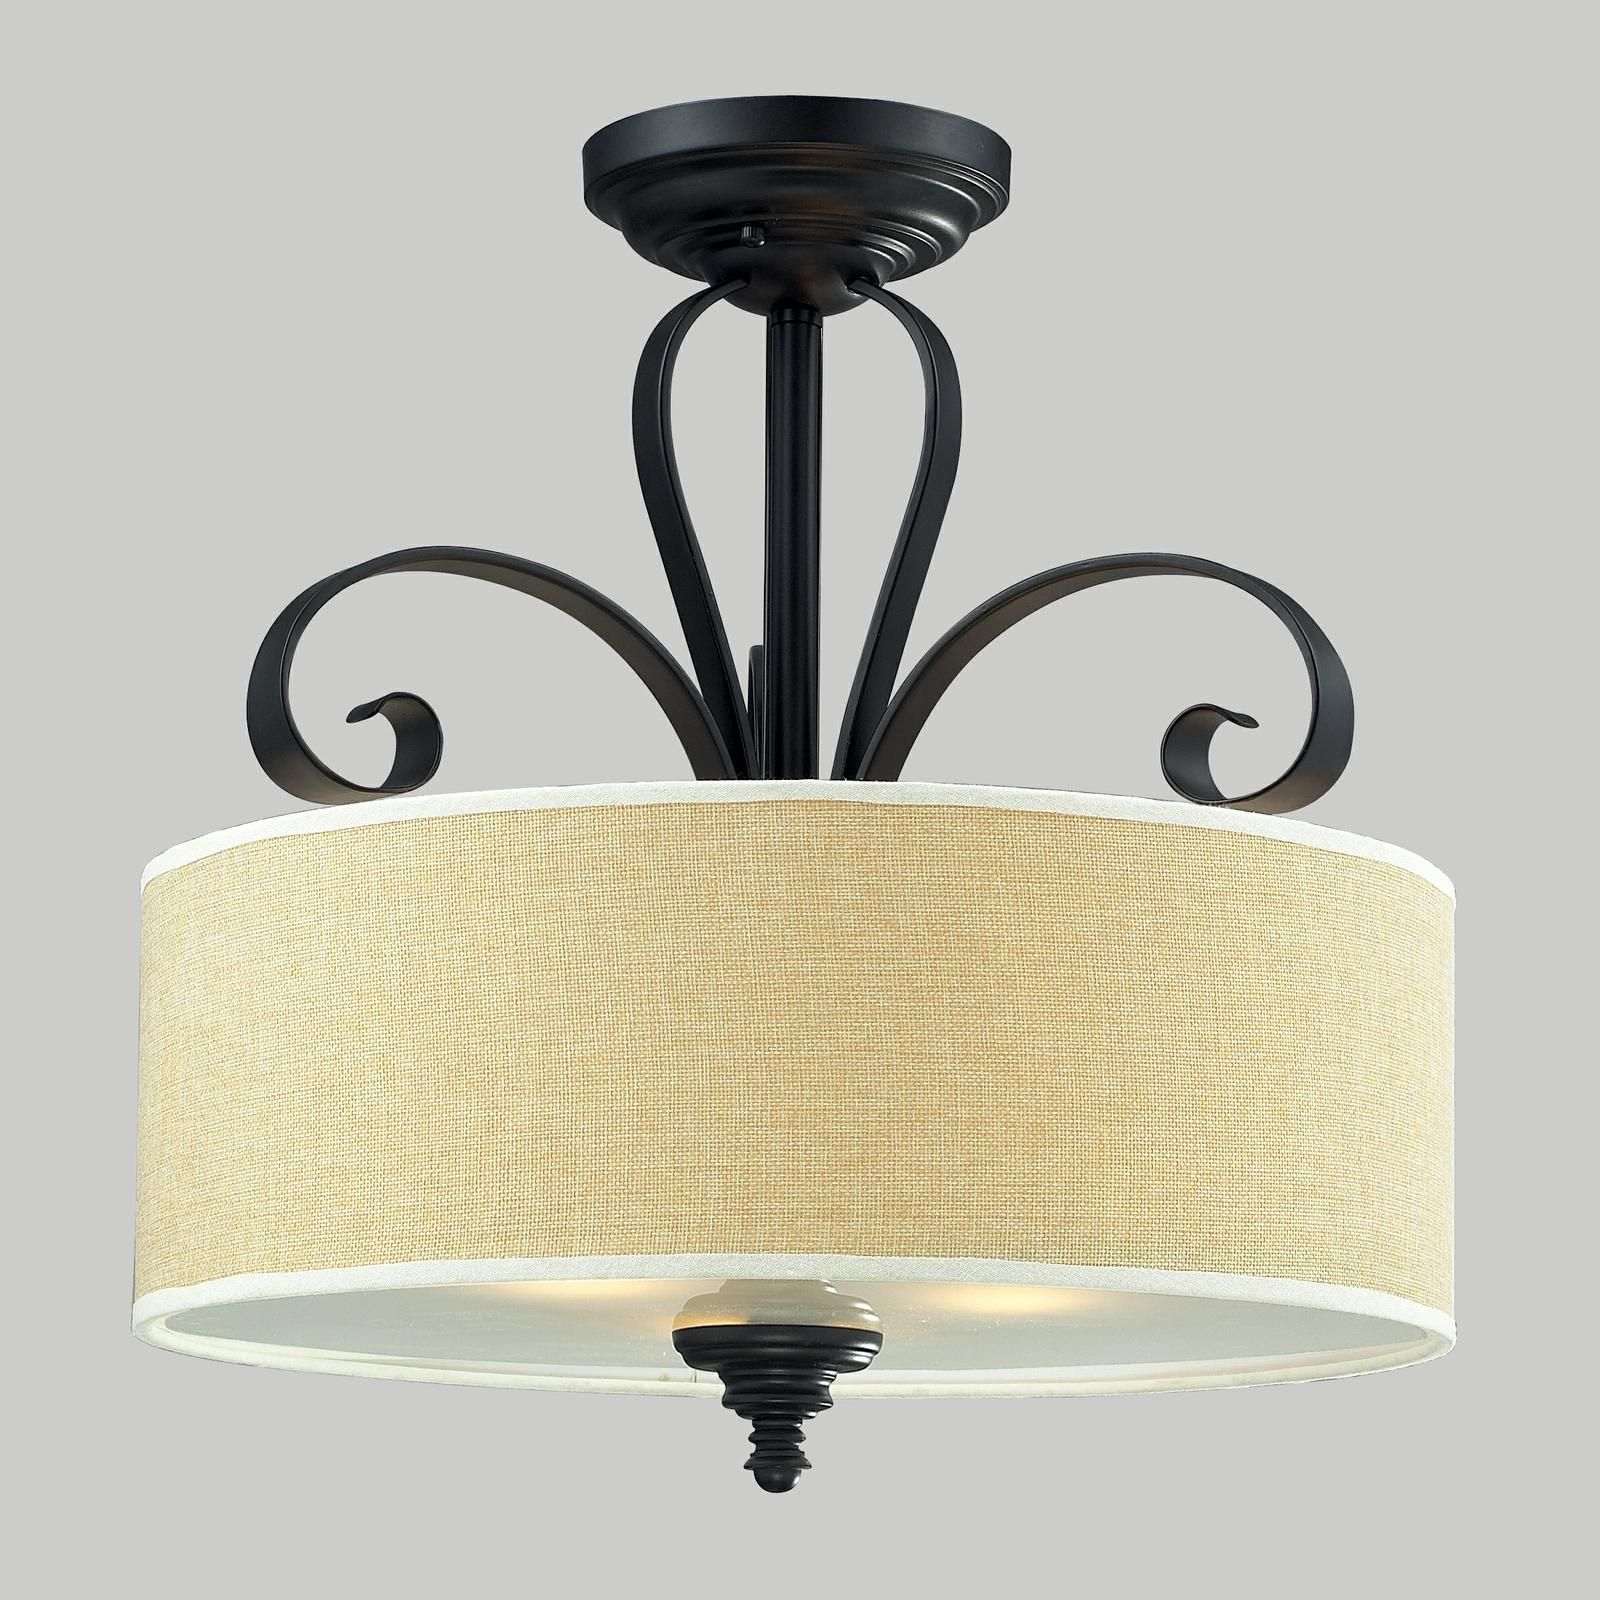 Add some southern flare to your home or office space with this shop for the z lite matte black charleston 3 light semi flush ceiling fixture with burlap shade and save doublecrazyfo Image collections